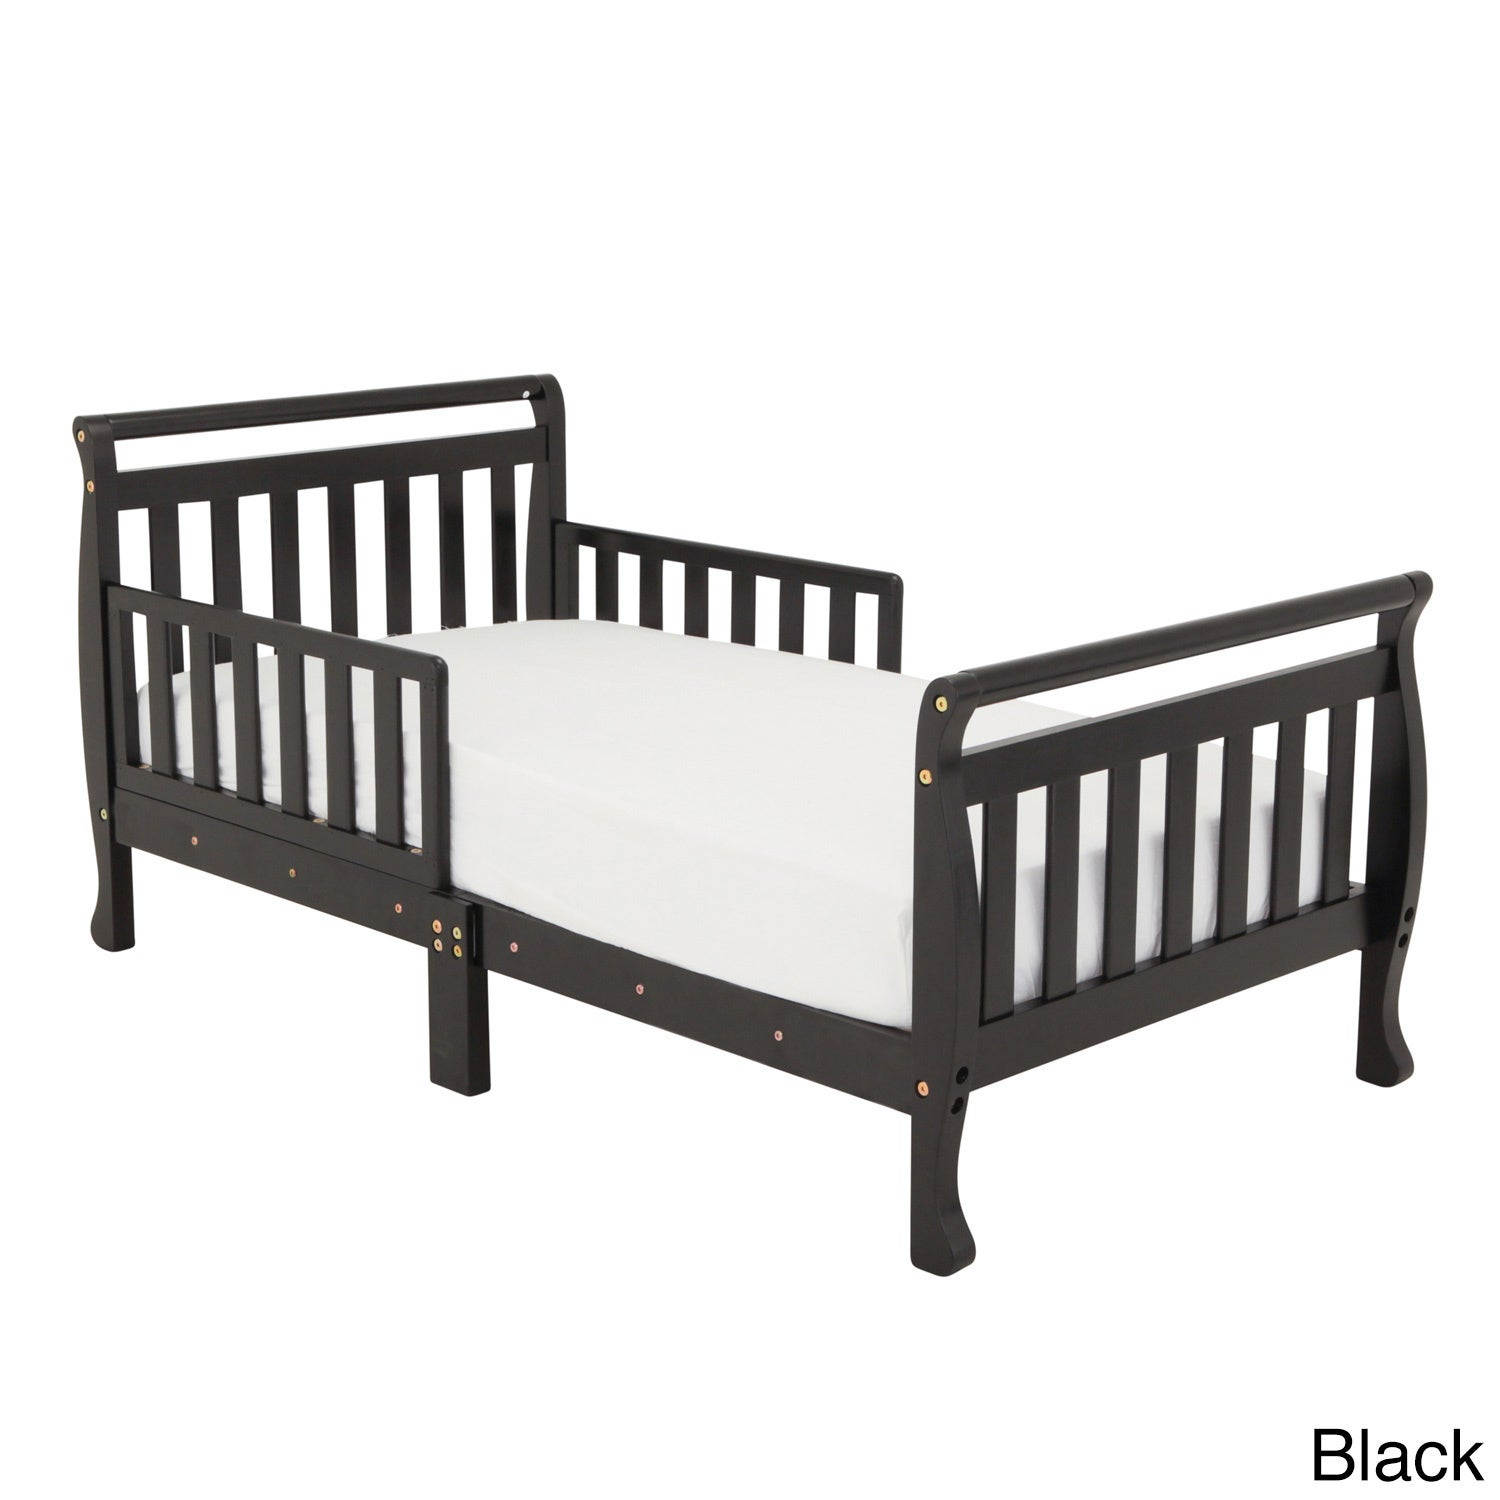 Details About Mikaila U0027Neridau0027 Wood Toddler Sleigh Bed